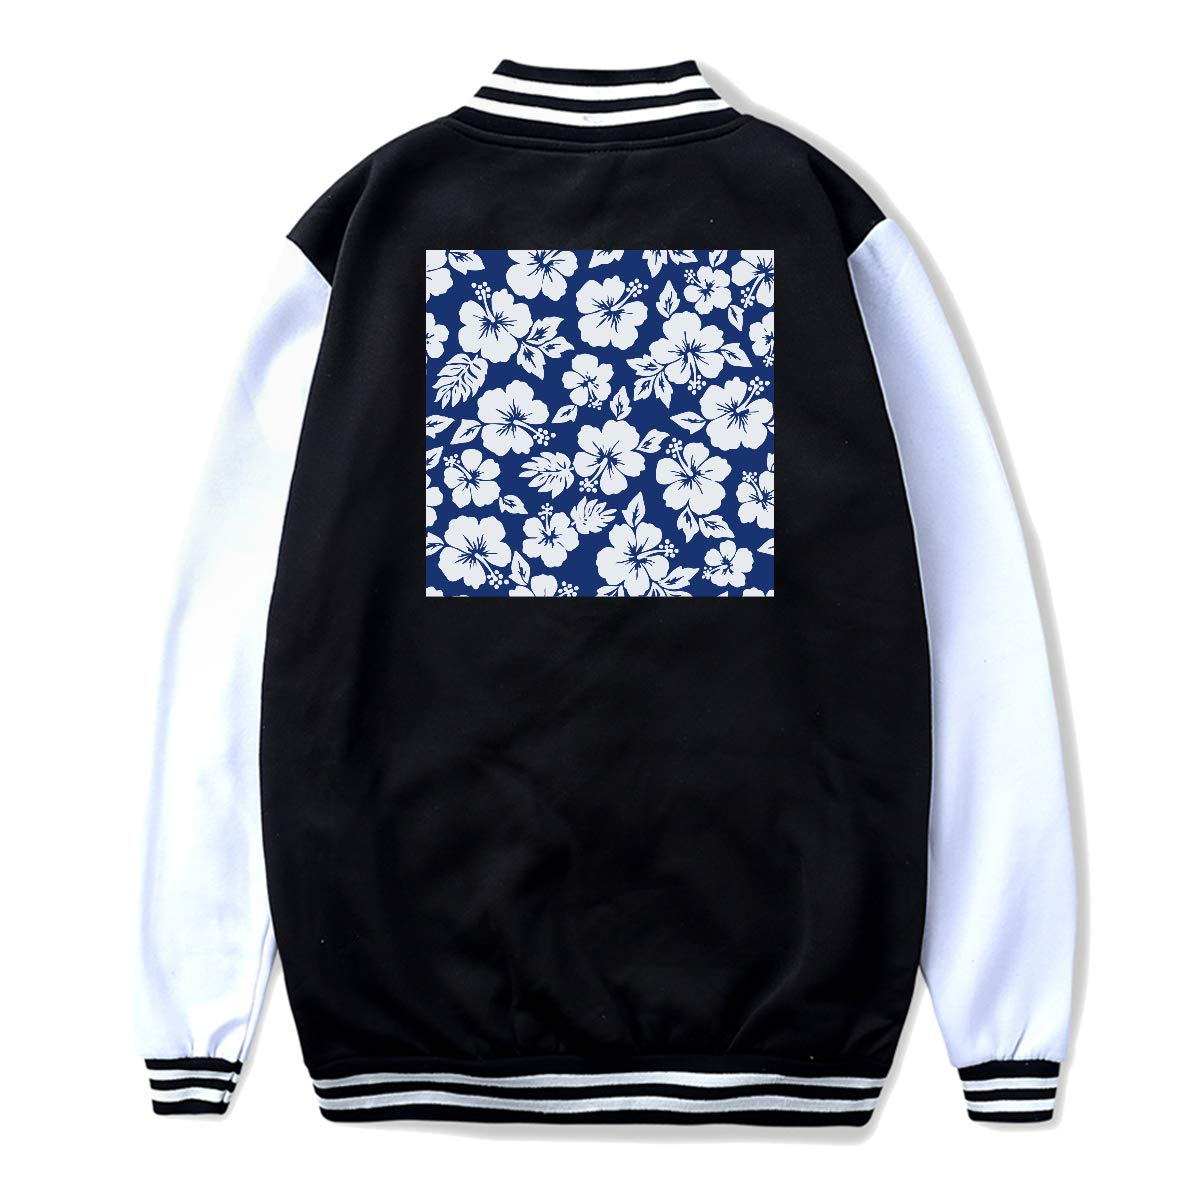 Back Print NJKM5MJ Unisex Youth Baseball Uniform Jacket Hibiscus Flowers Seamless Pattern Hoodie Coat Sweater Sweatshirt